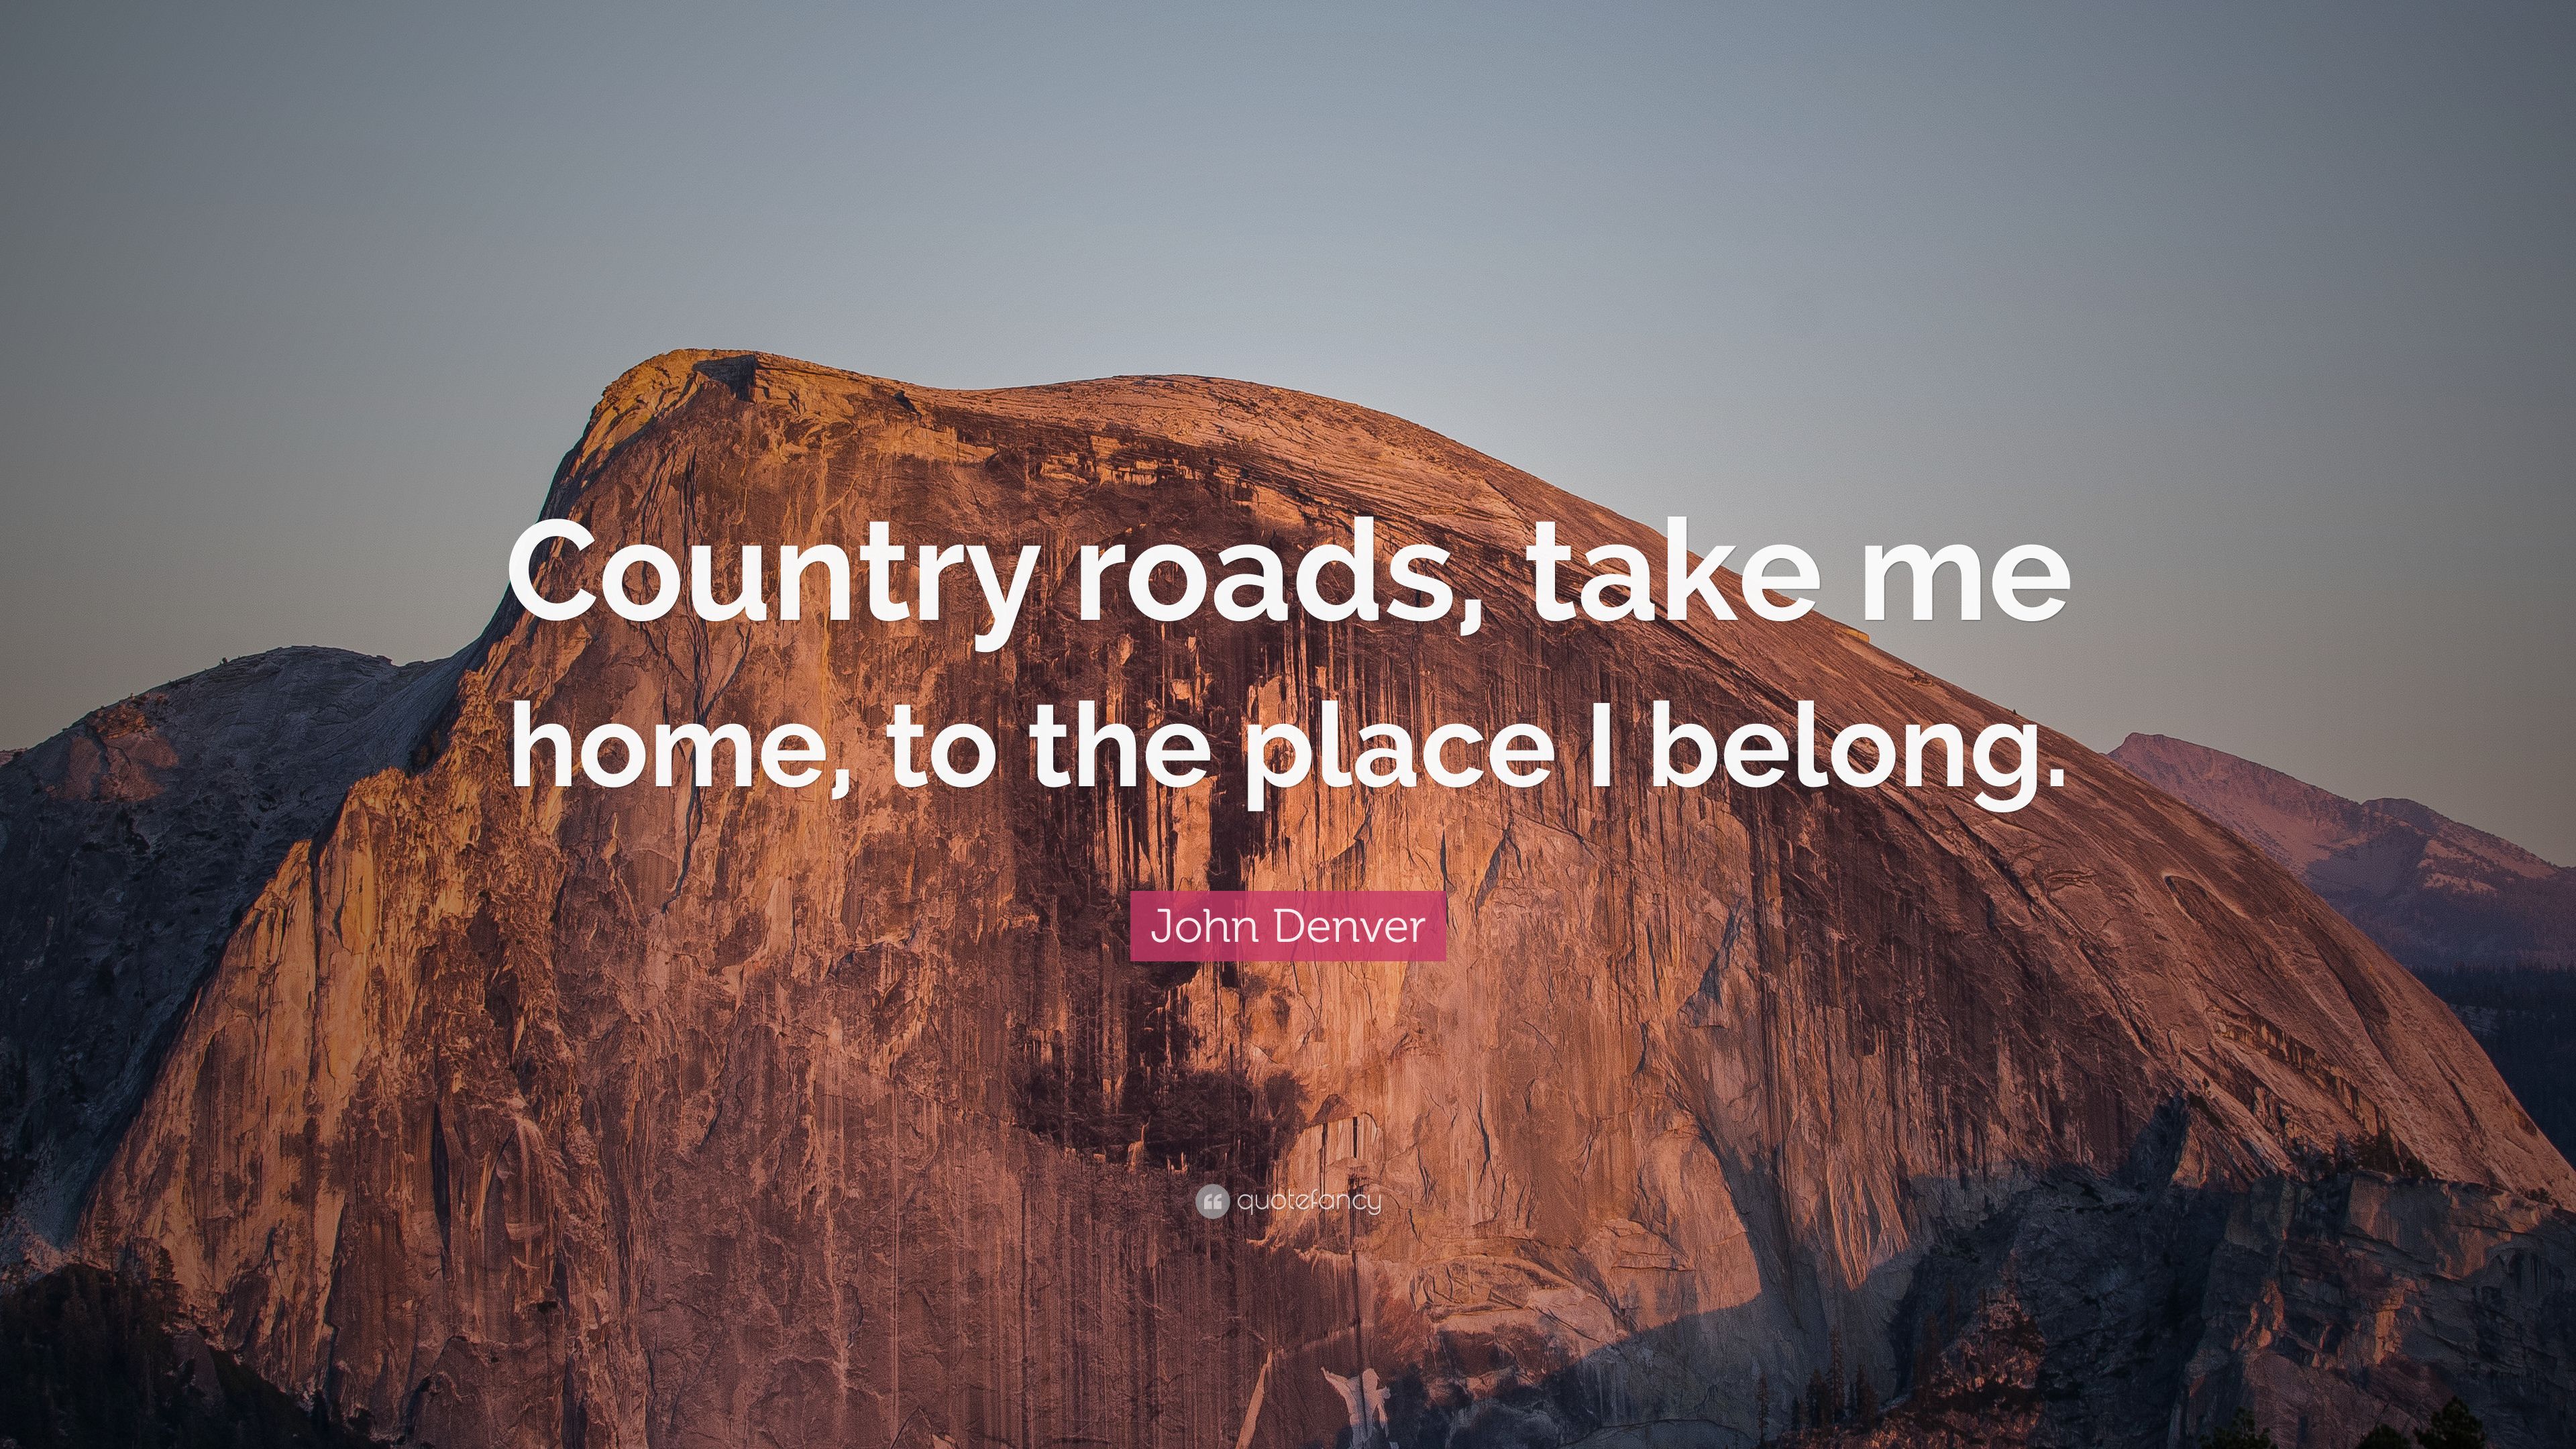 Steve Jobs Motivational Quotes Wallpaper John Denver Quote Country Roads Take Me Home To The